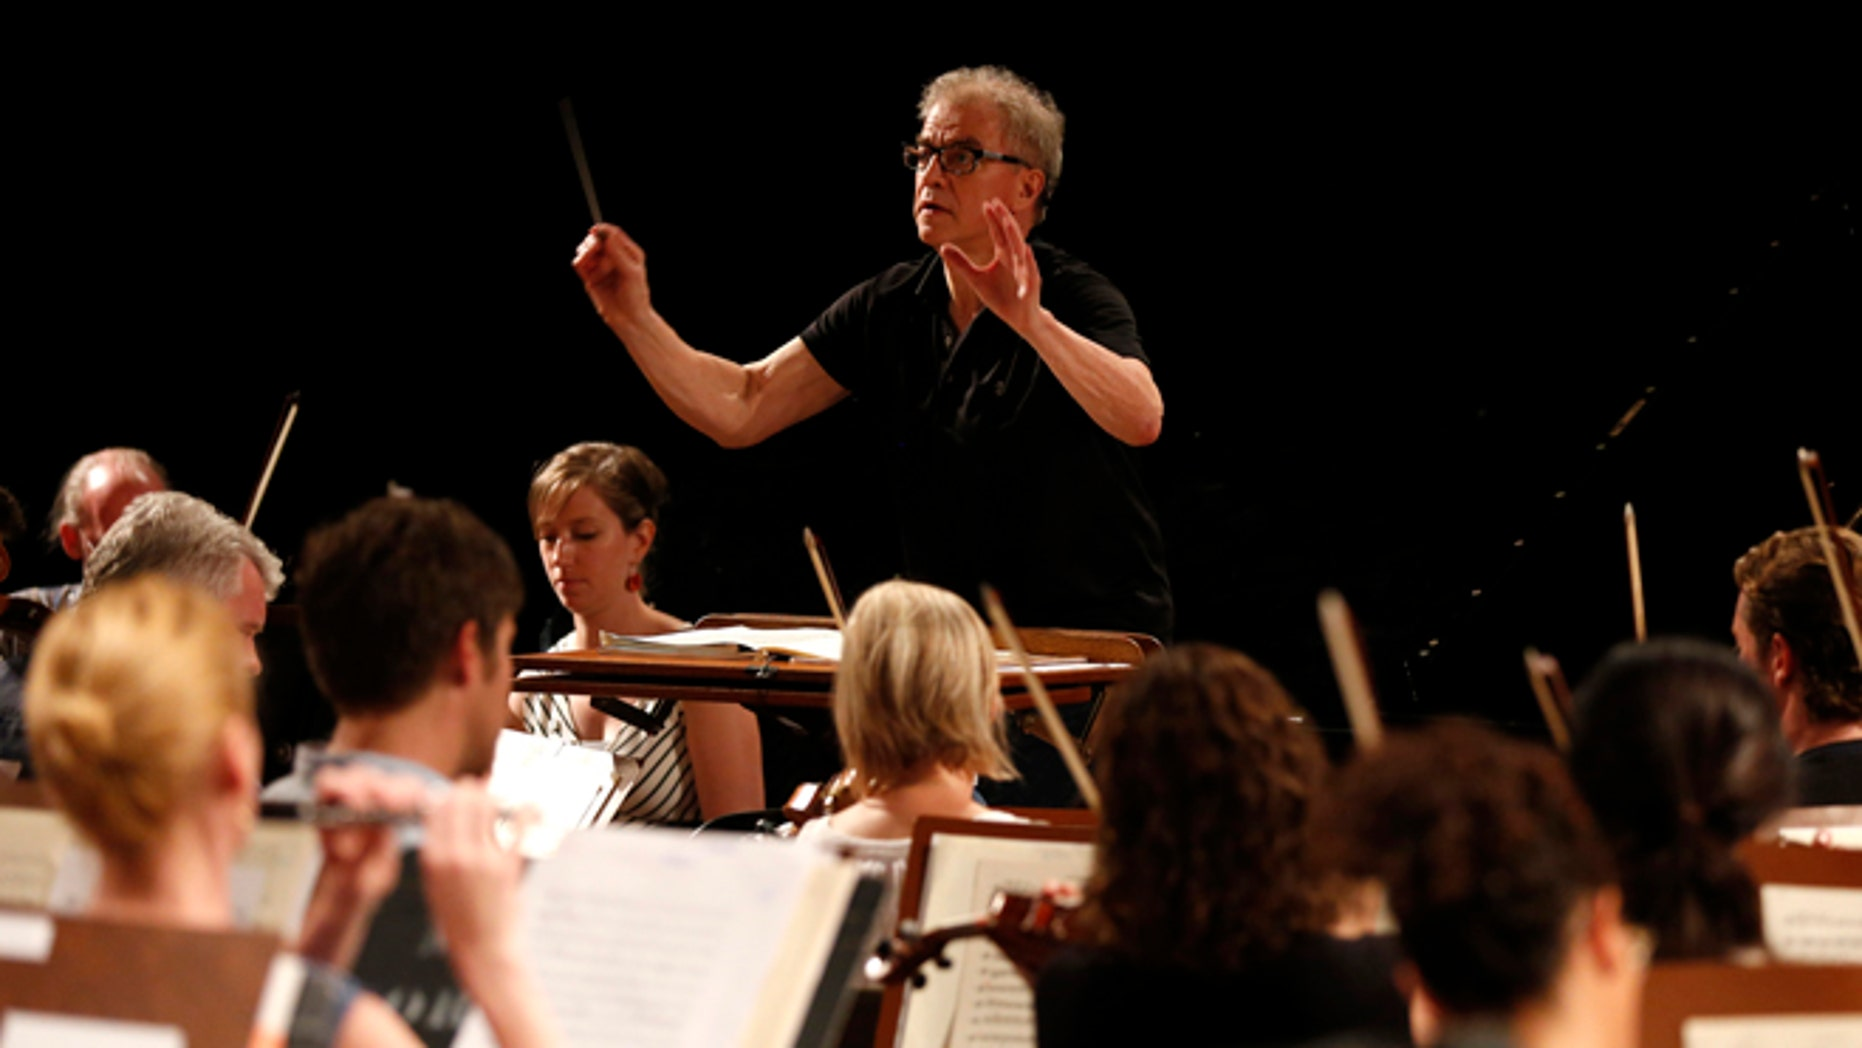 Minnesota Orchestra Music Director Osmo Vanska of Finland conducts a rehearsal in Havana, Cuba, Thursday, May 14, 2015. The Minnesota Orchestra also played Havana in 1929 and 1930, when it was called the Minneapolis Symphony. Fridays all-Beethoven program was a reprise of its 1929 repertoire, with performances of Overture to Egmont, Opus 84, Fantasy in C minor for piano, chorus and orchestra, Opus 80, and Symphony No. 3 in E-flat major, Opus 55.  (AP Photo/Desmond Boylan)